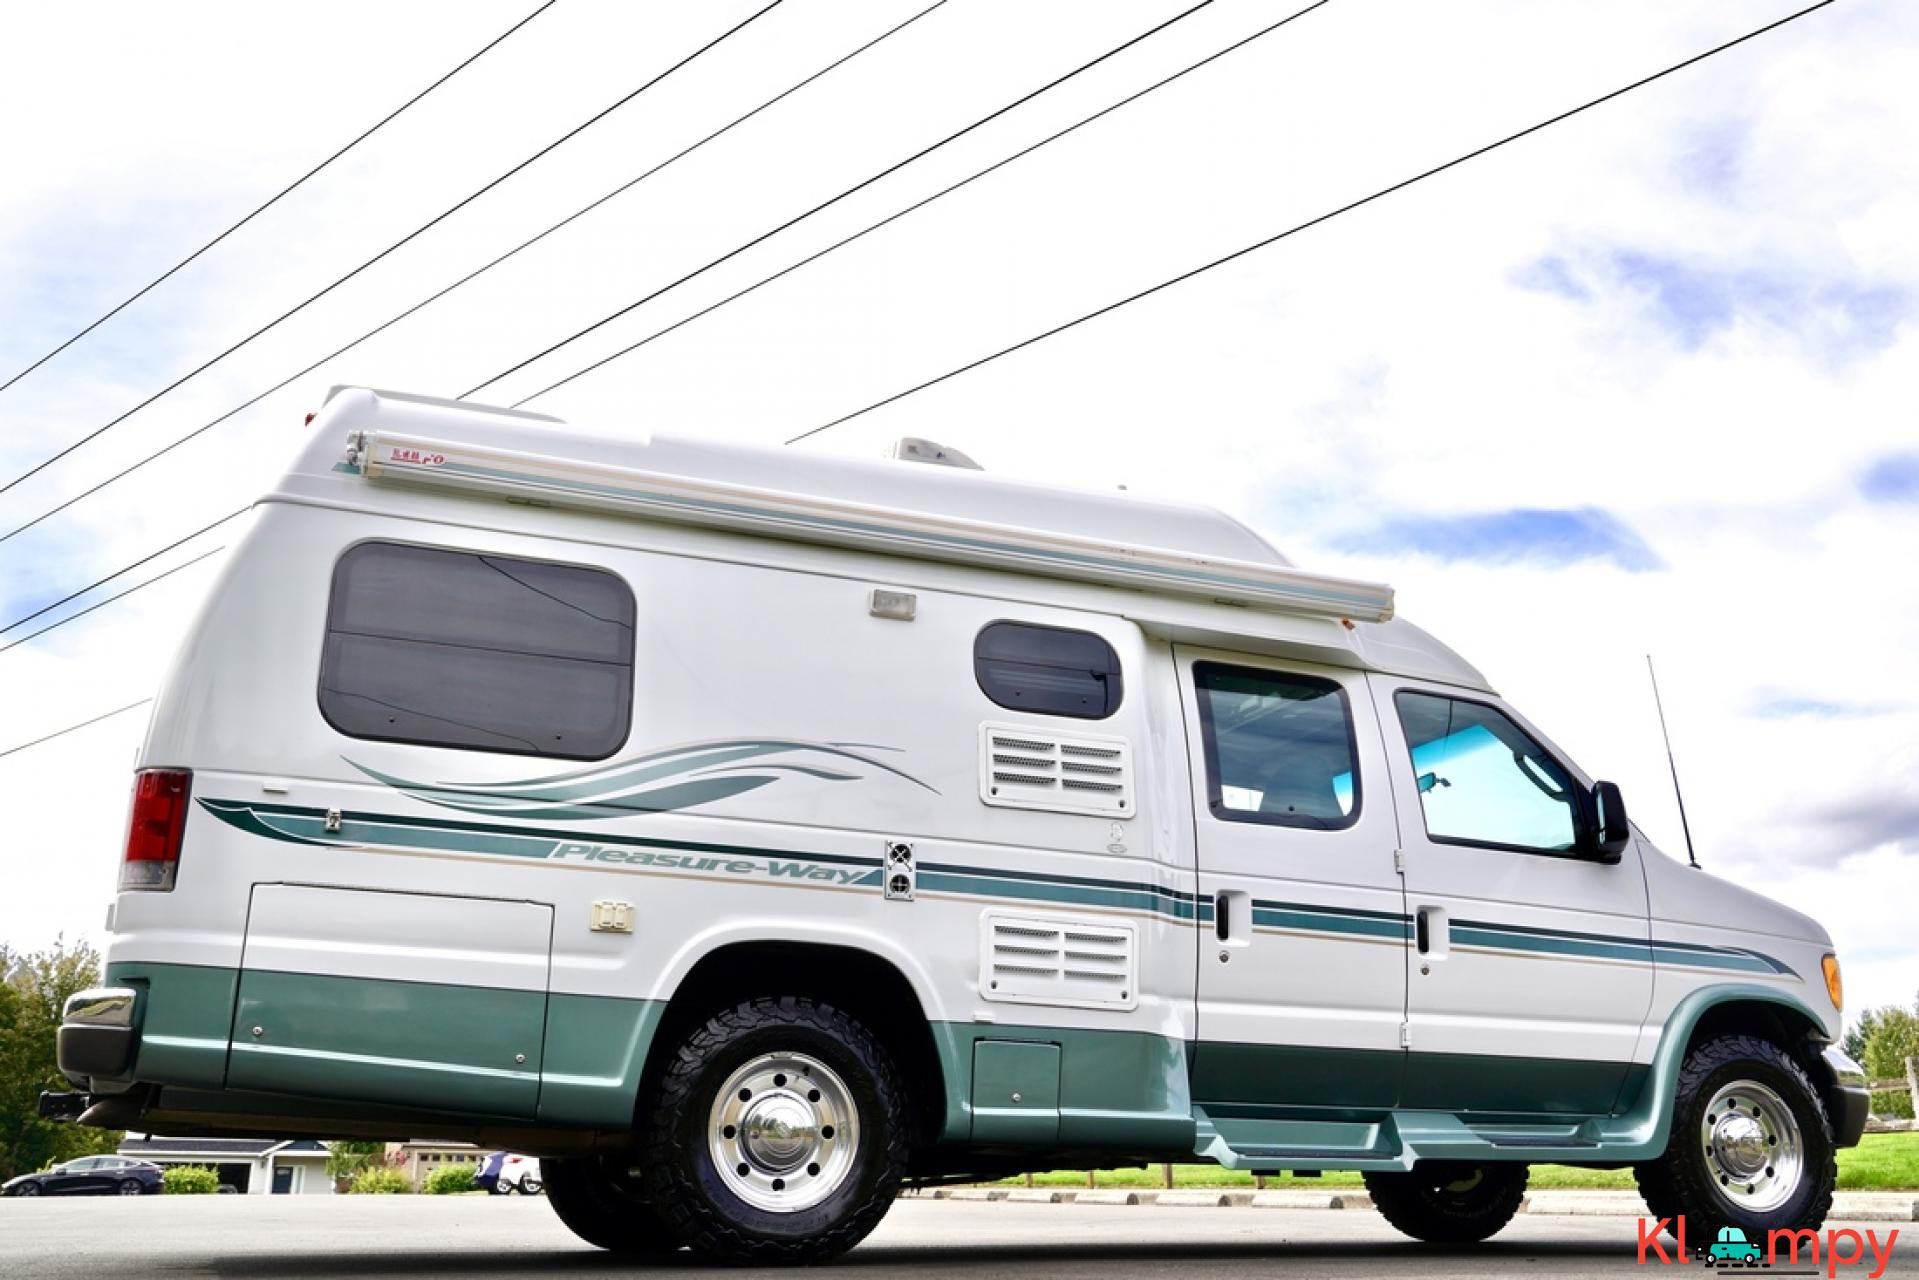 2004 Pleasure-Way Excel 20' Class B - 8/23